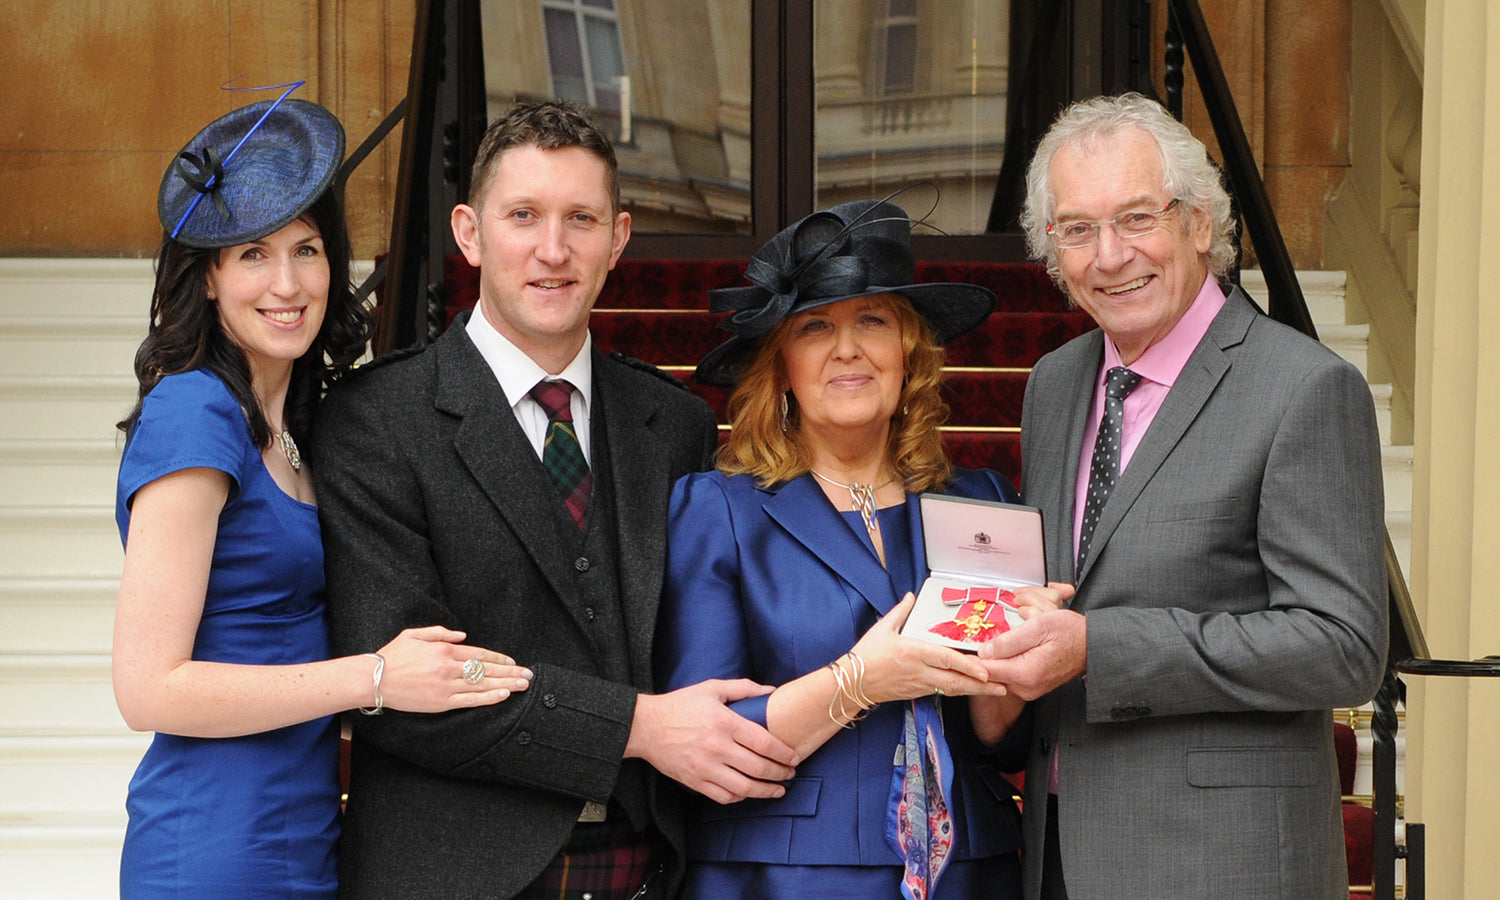 Sheila Fleet and family, after receiving her OBE for services to the jewellery industry